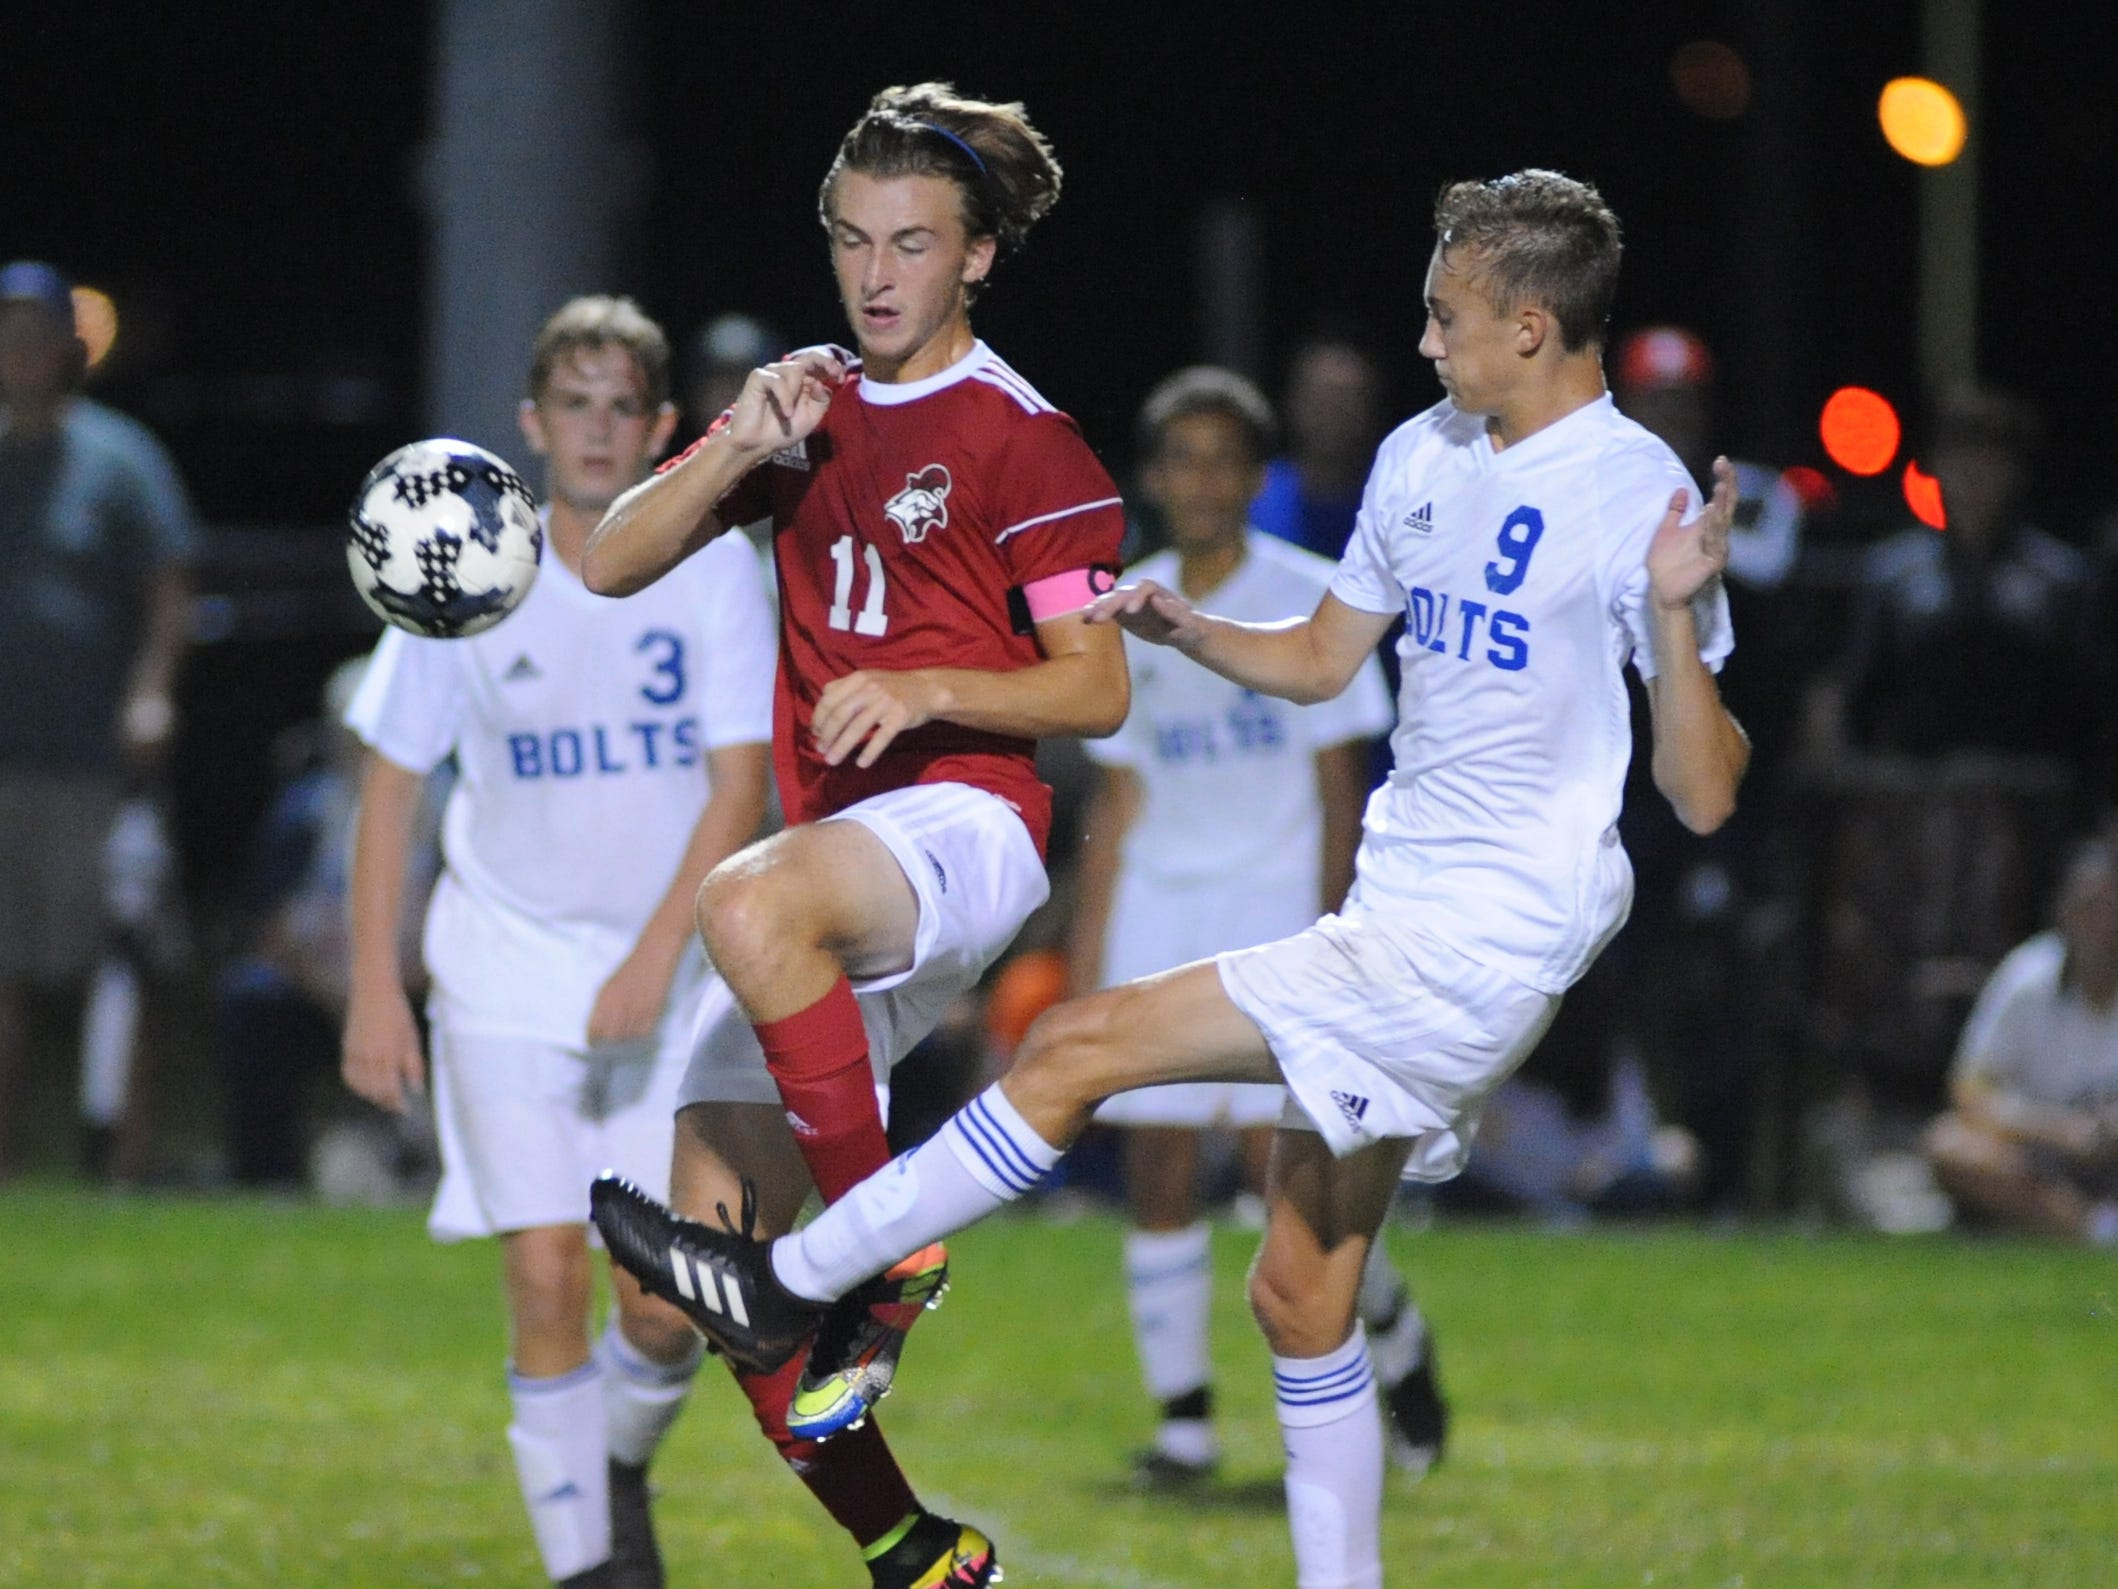 Millville's William Muhlbaier kicks the ball with Vineland's Lucas Portadin defending during a boys soccer game at Romano Sports Complex in Vineland, Monday, Sept. 17, 2018.